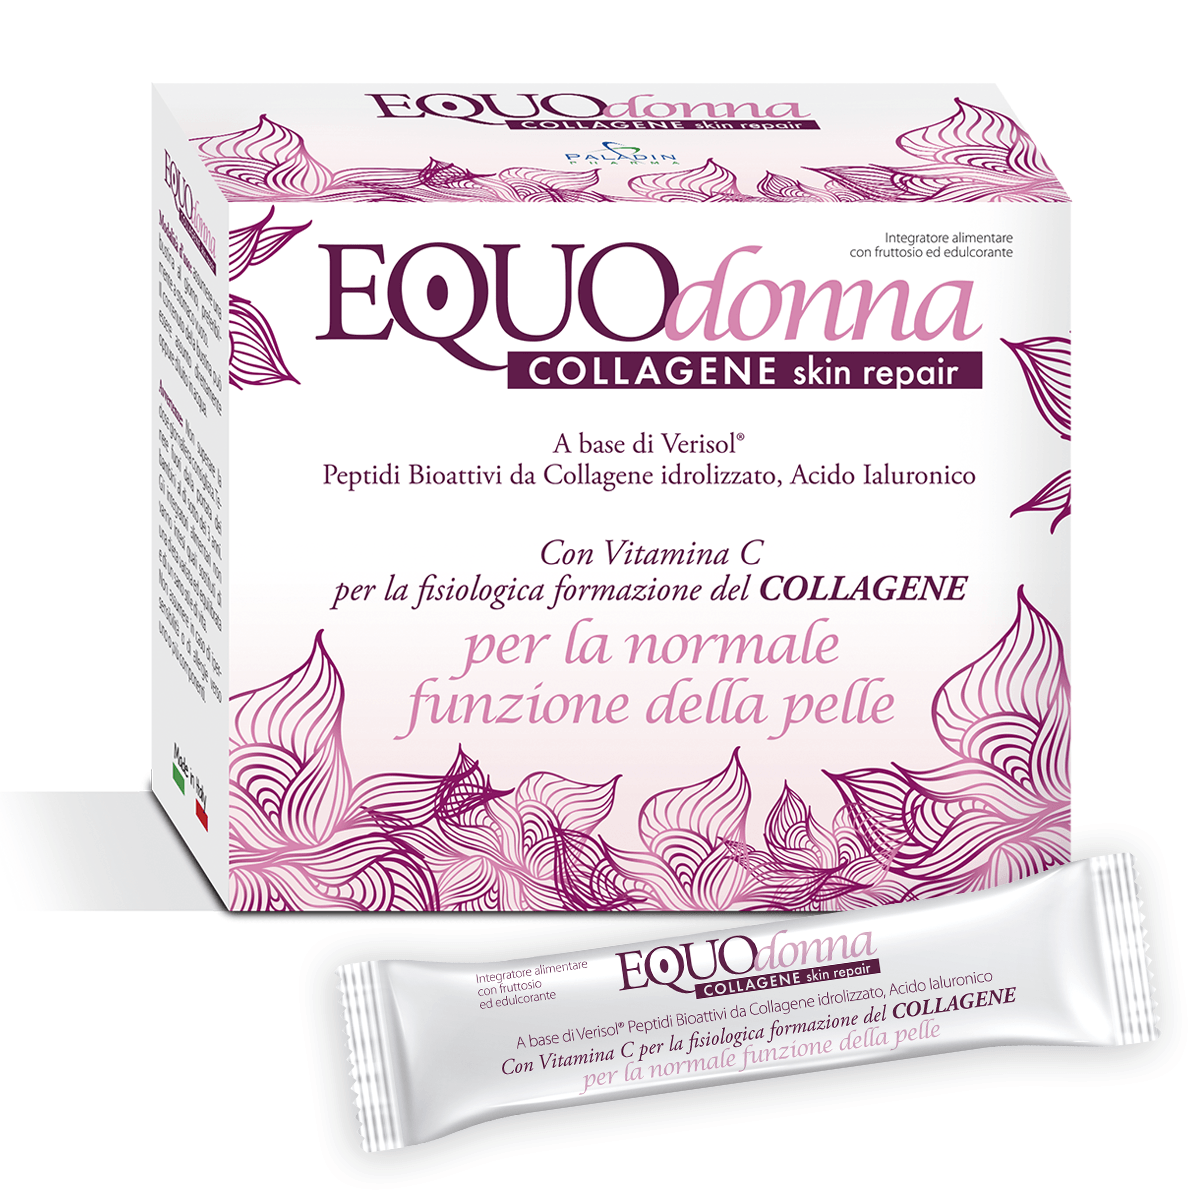 EQUO DONNA COLLAGENE SKIN REPAIR